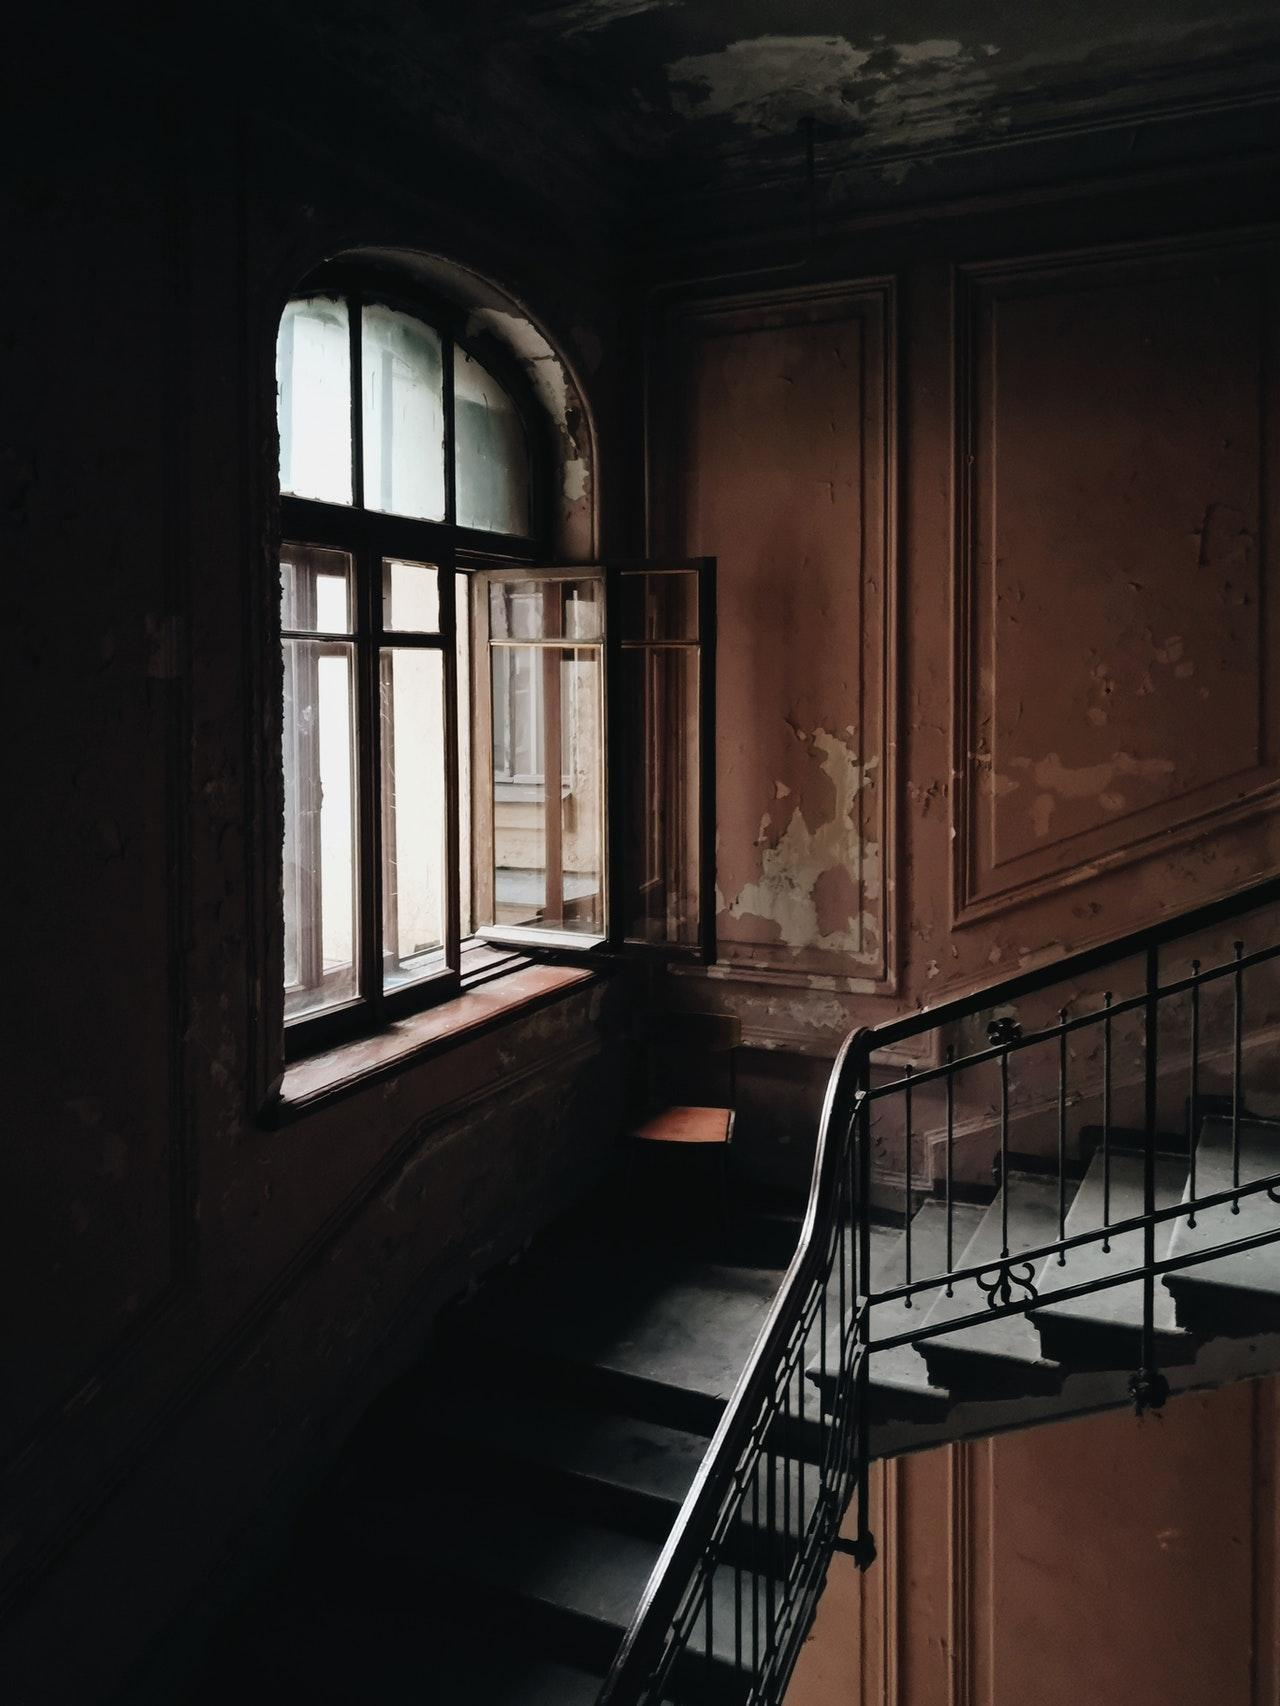 Stairs in abandoned building